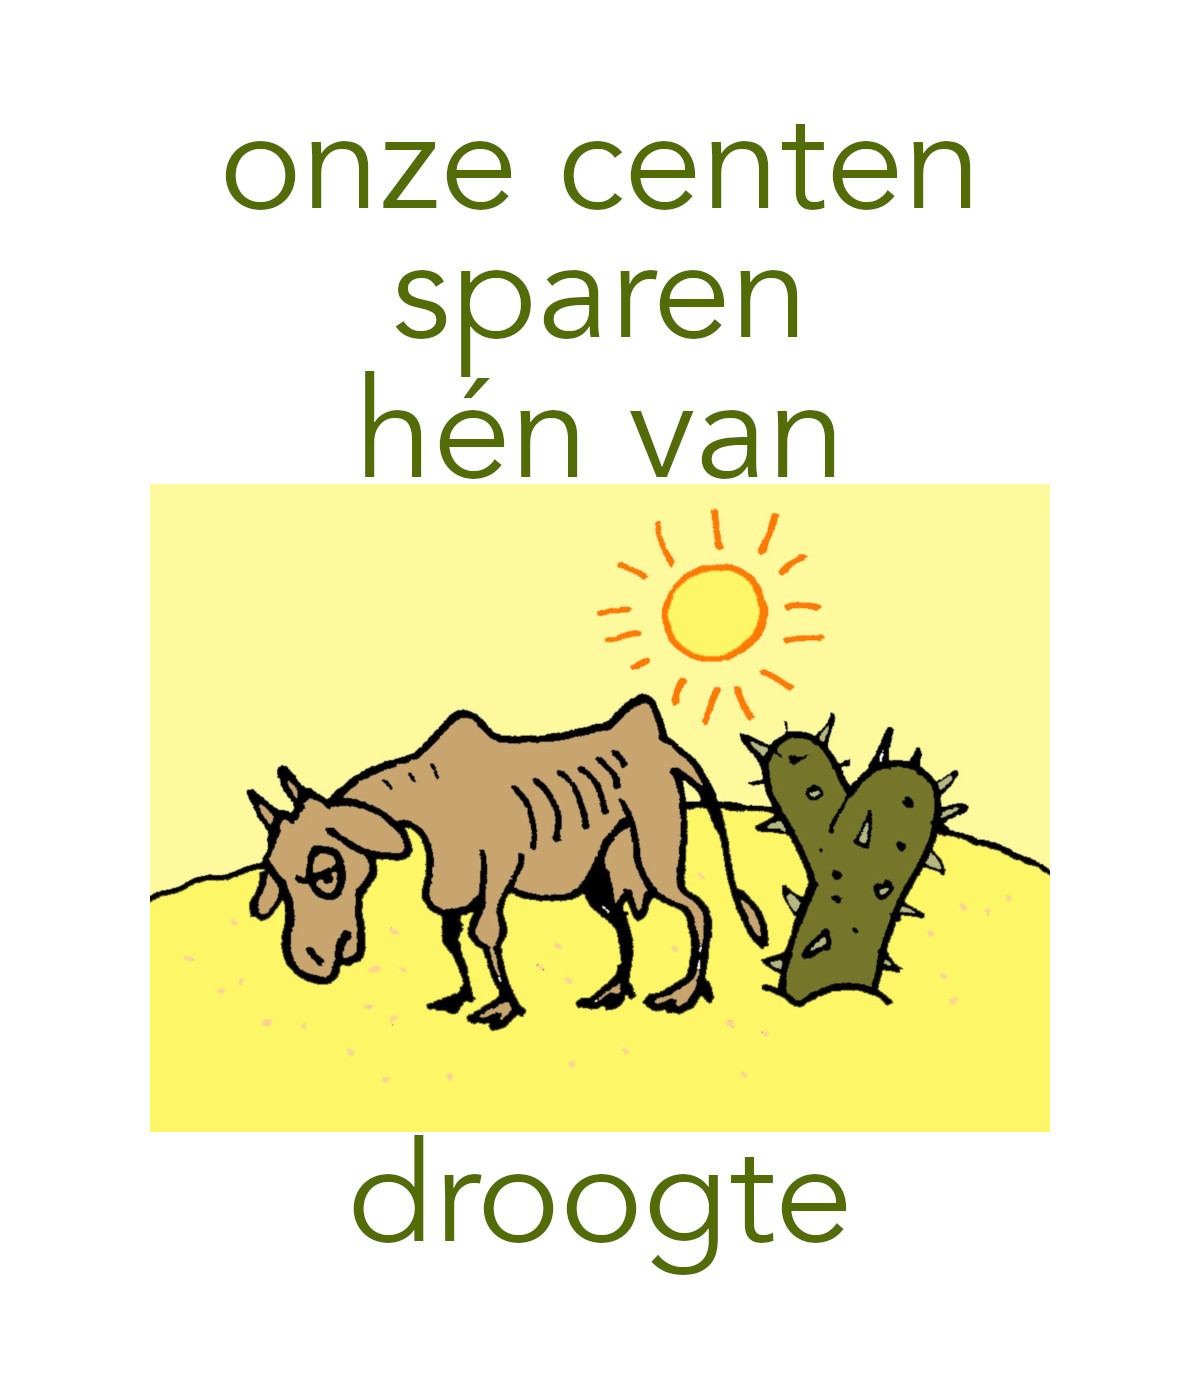 oc_droogte